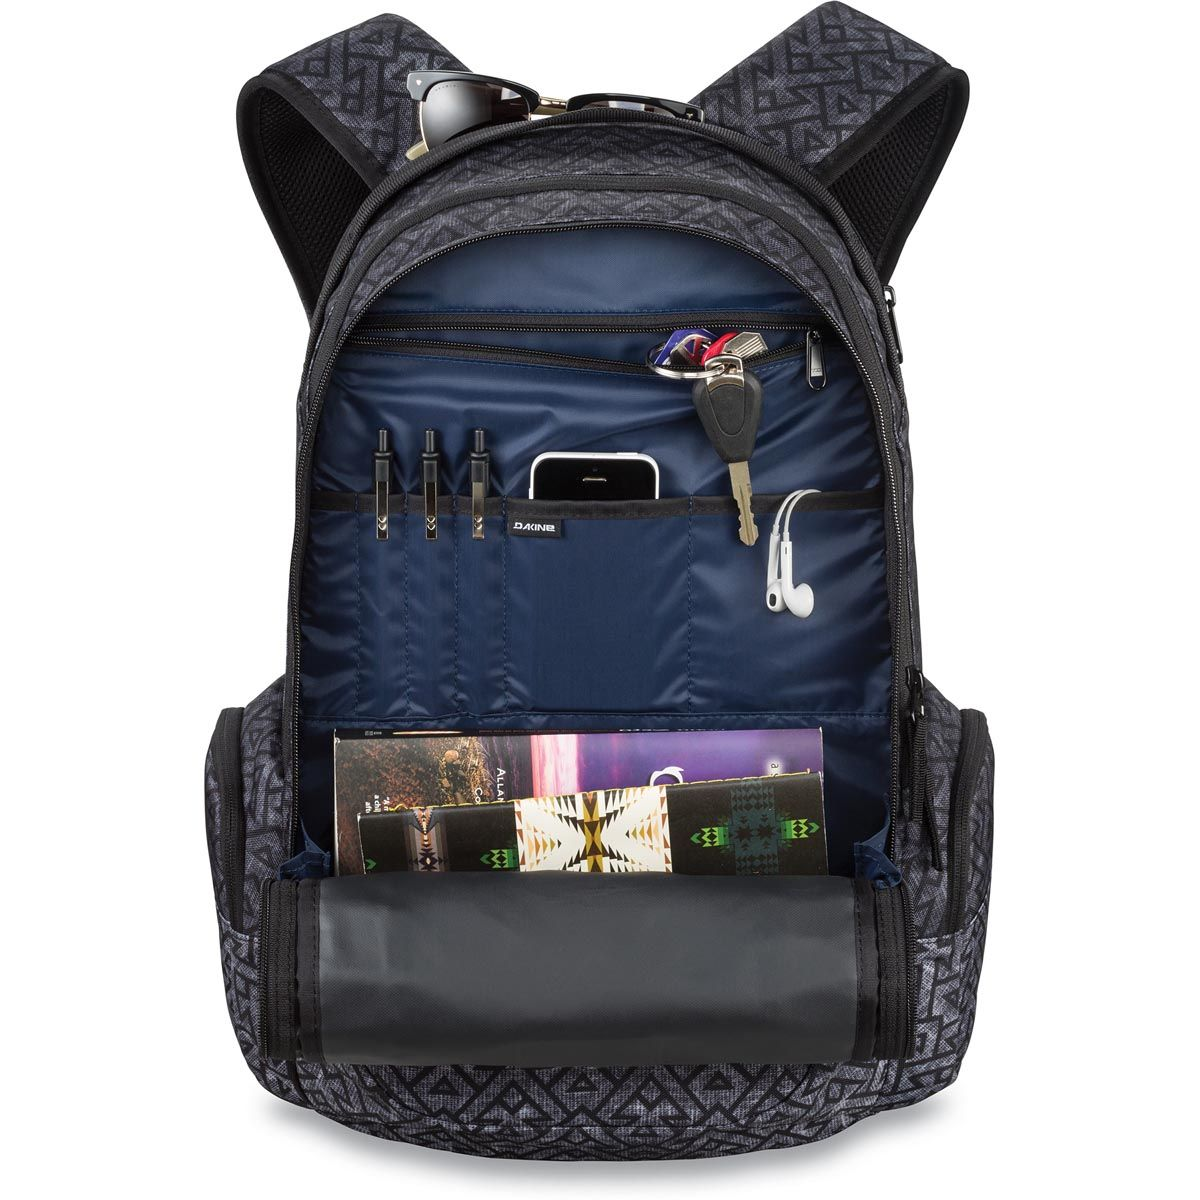 Dakine Mission 25L (Stacked) Backpack Bags ytVs5ce2m9